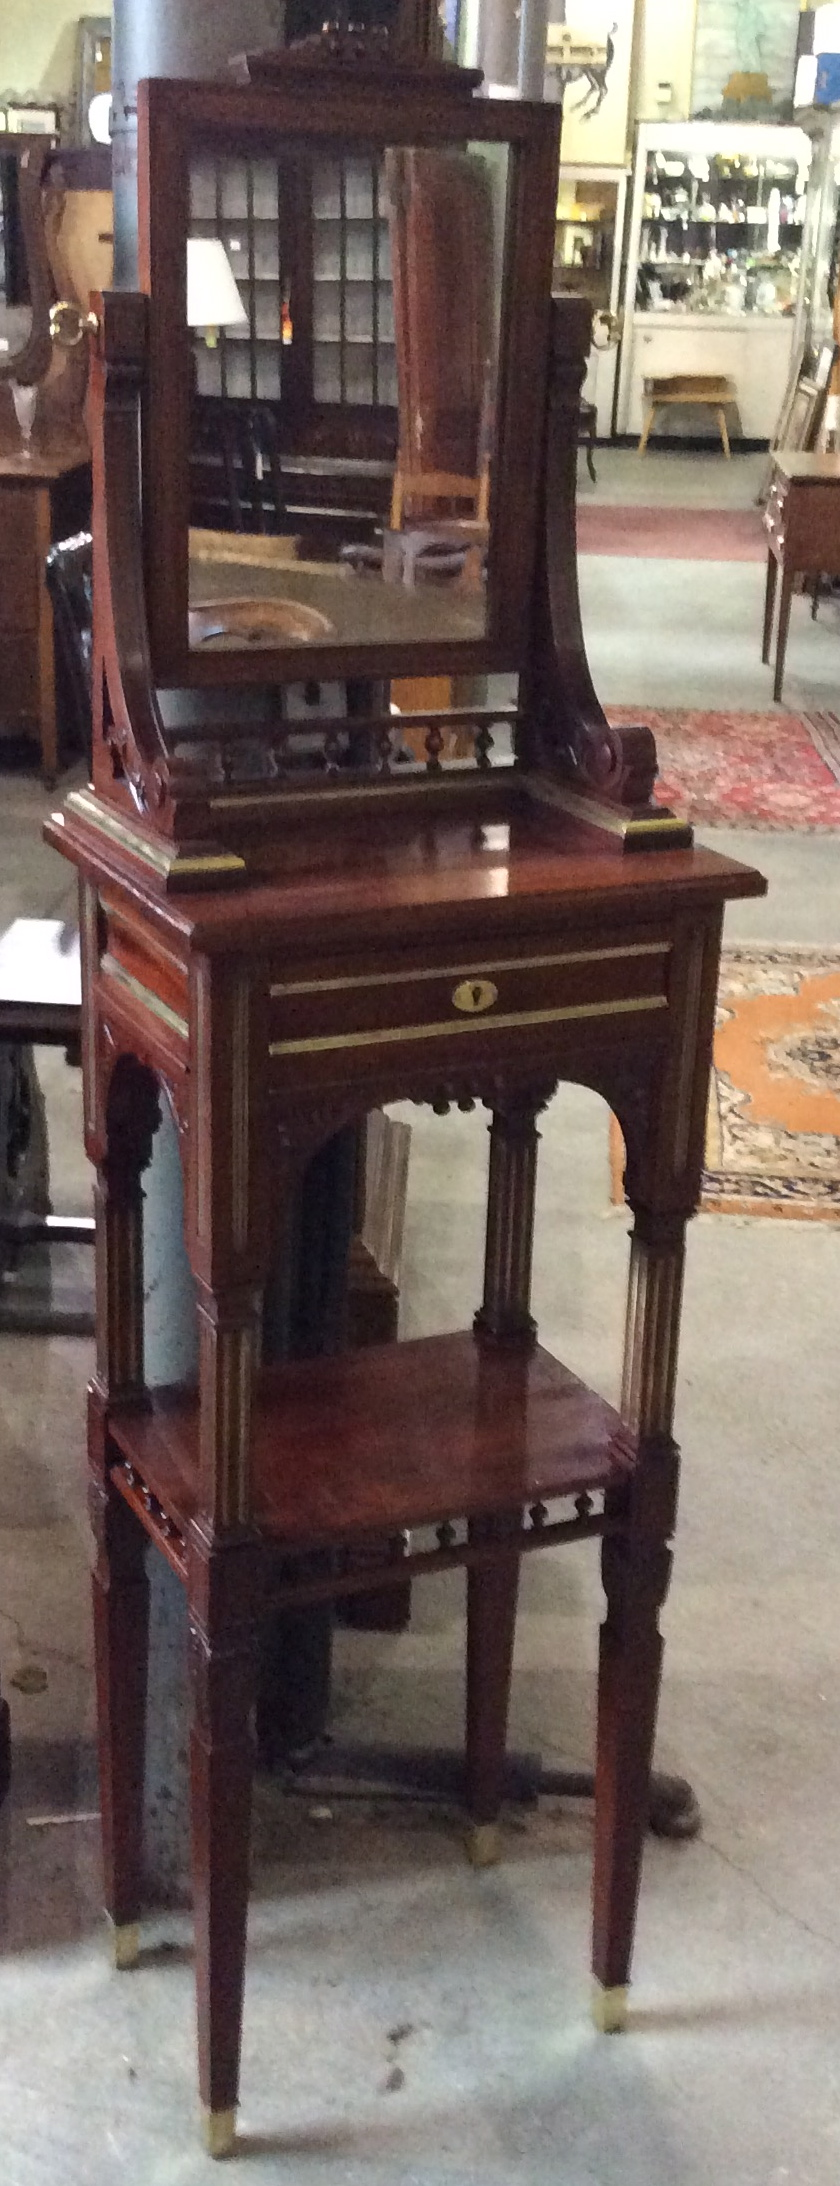 100 Kimball Victorian Furniture Reproductions Can Spray Paint The Fabric With Fabric Paint